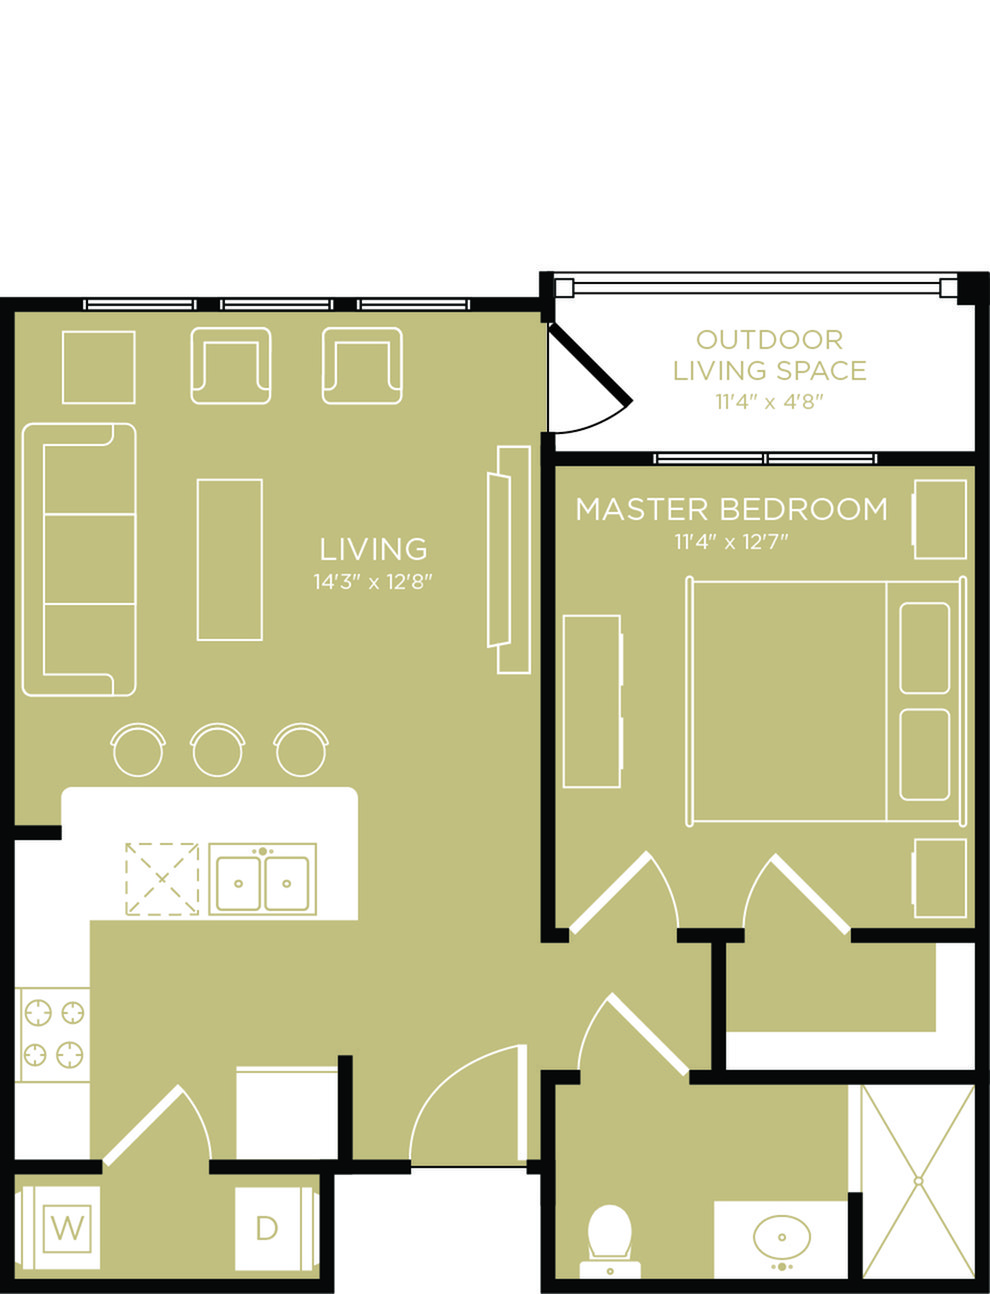 Floor Plan 3 | Apartments In Wylie Texas | The Mansions at Wylie